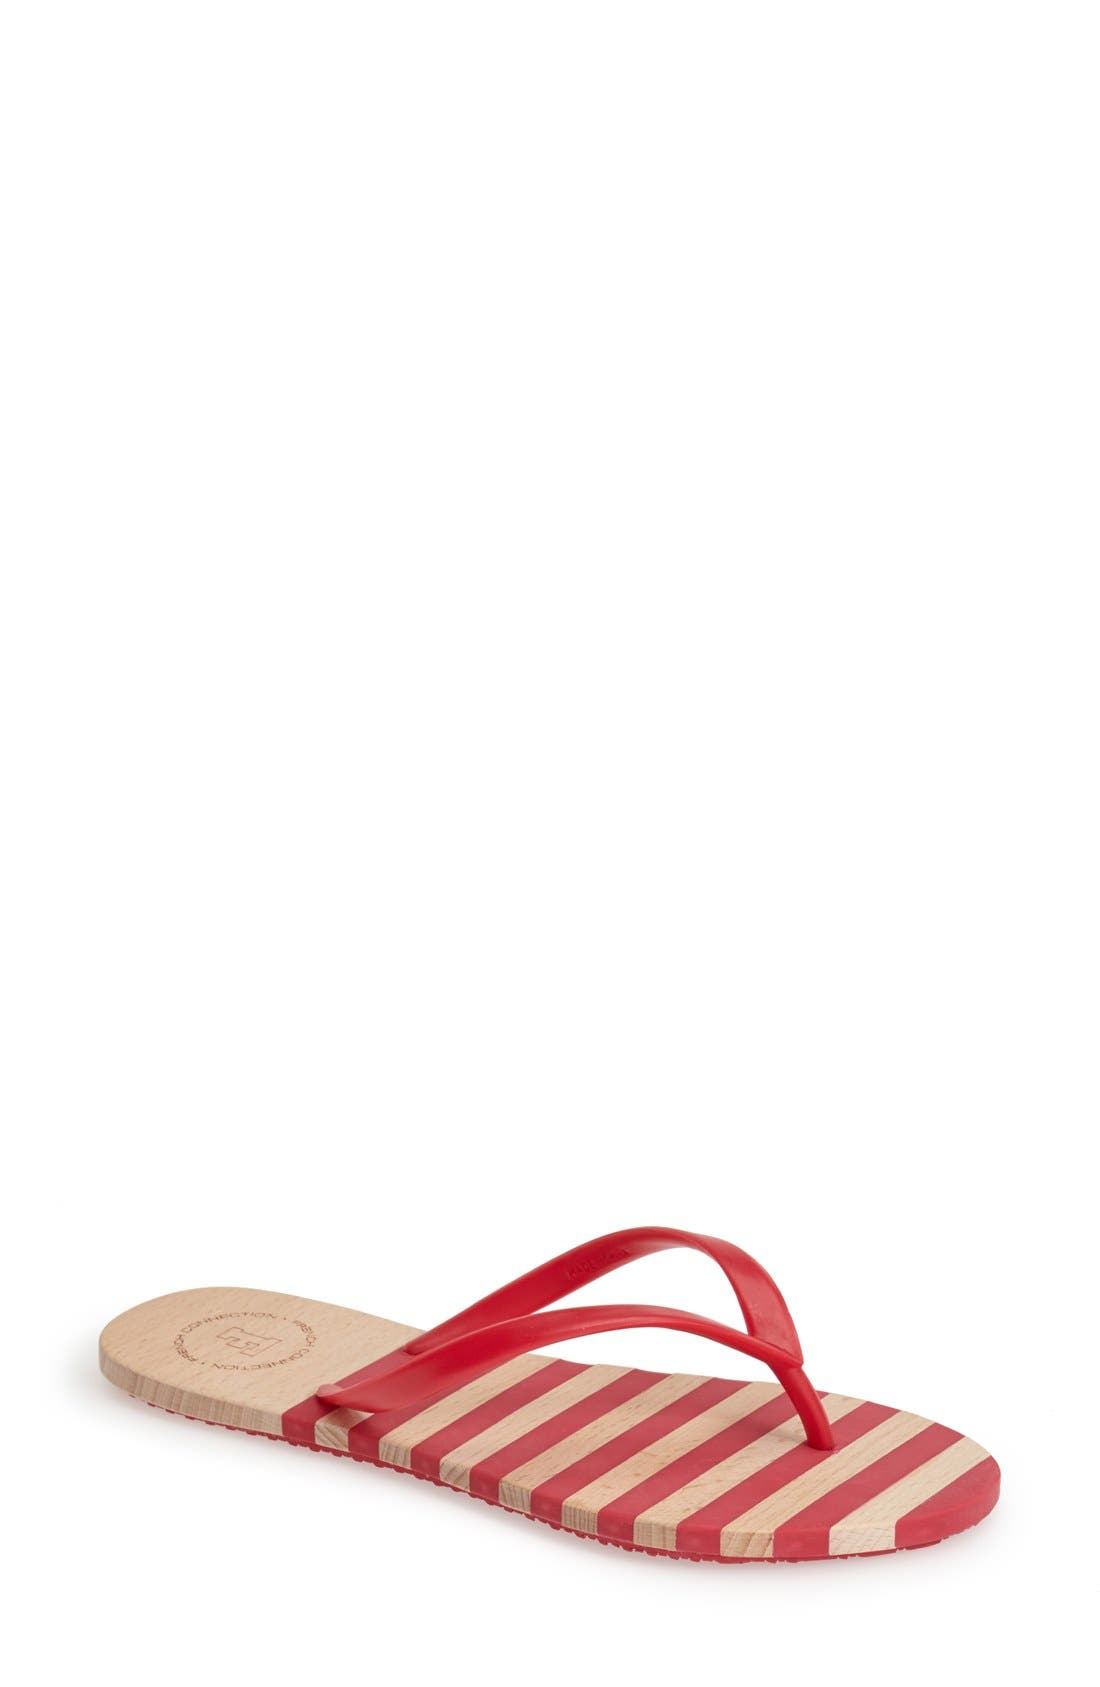 Alternate Image 1 Selected - French Connection 'Filipa' Flip Flop (Women)